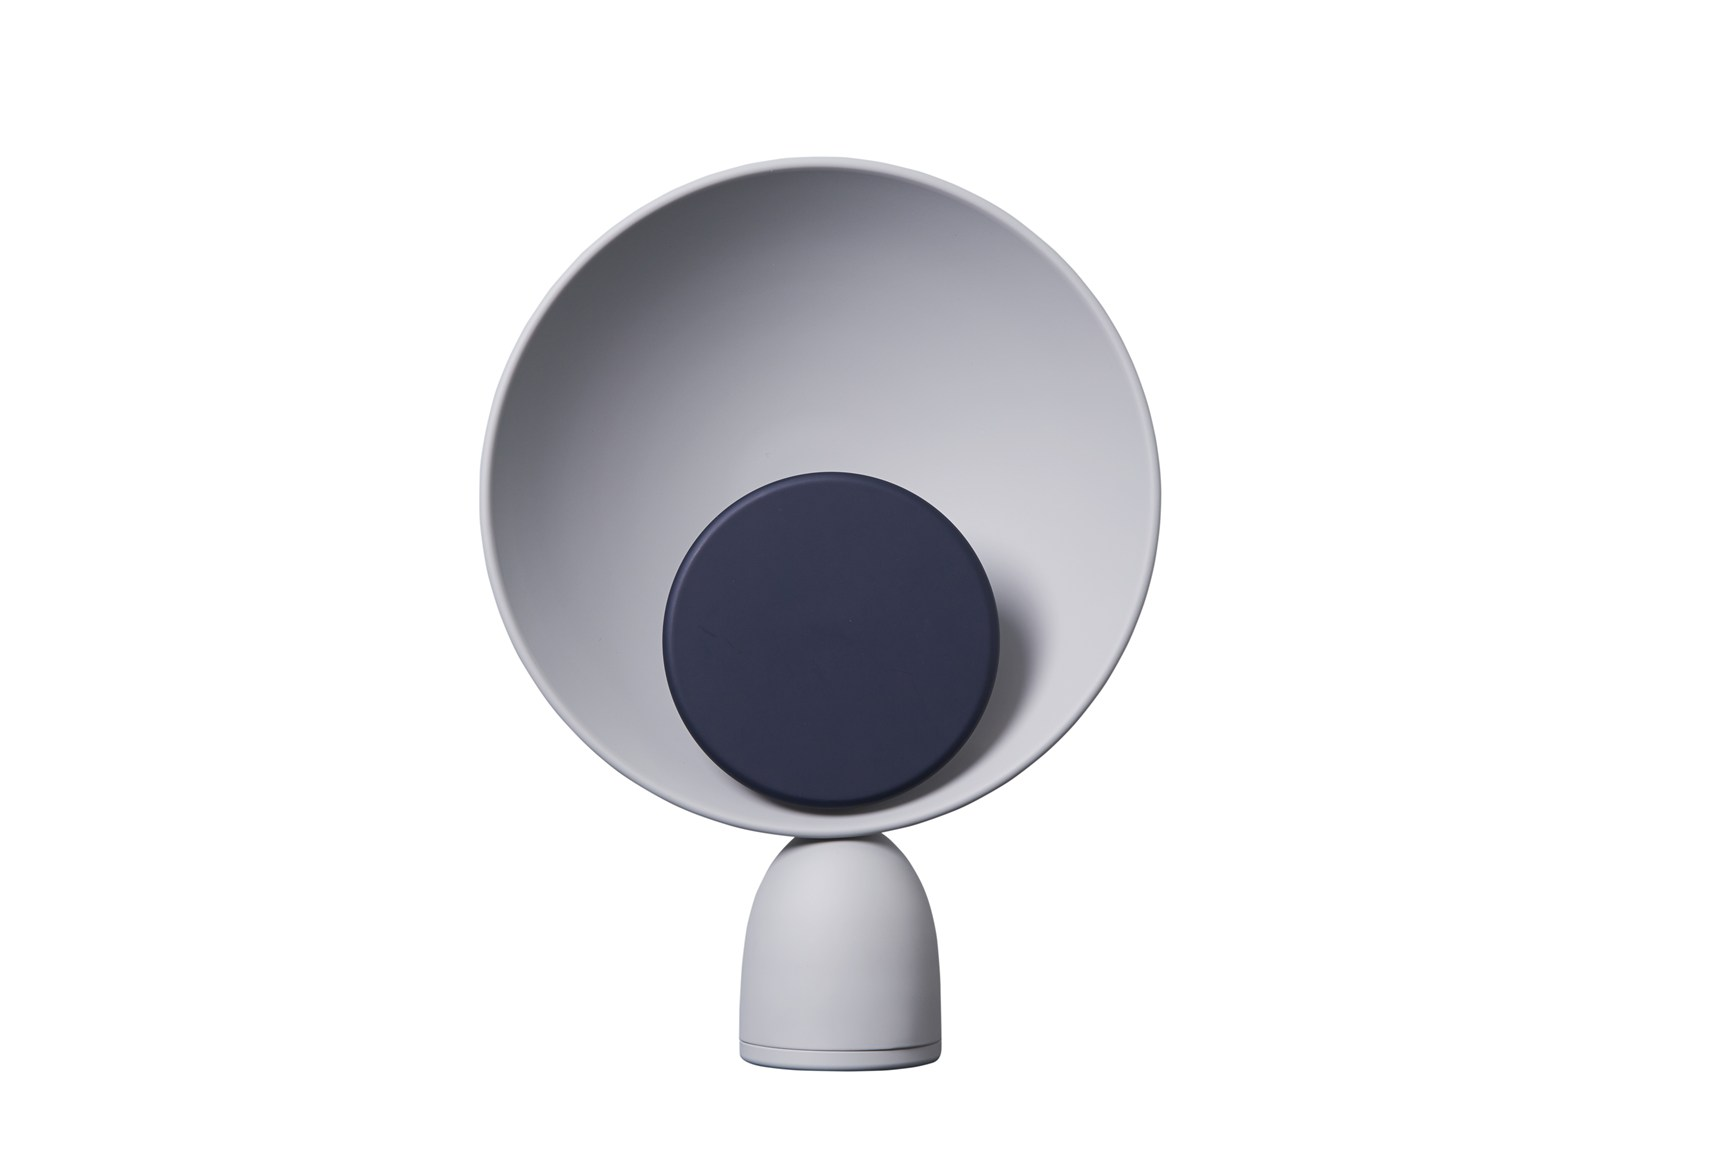 Blooper Table Lamp by Mette Schelde for PLEASE WAIT to be SEATED